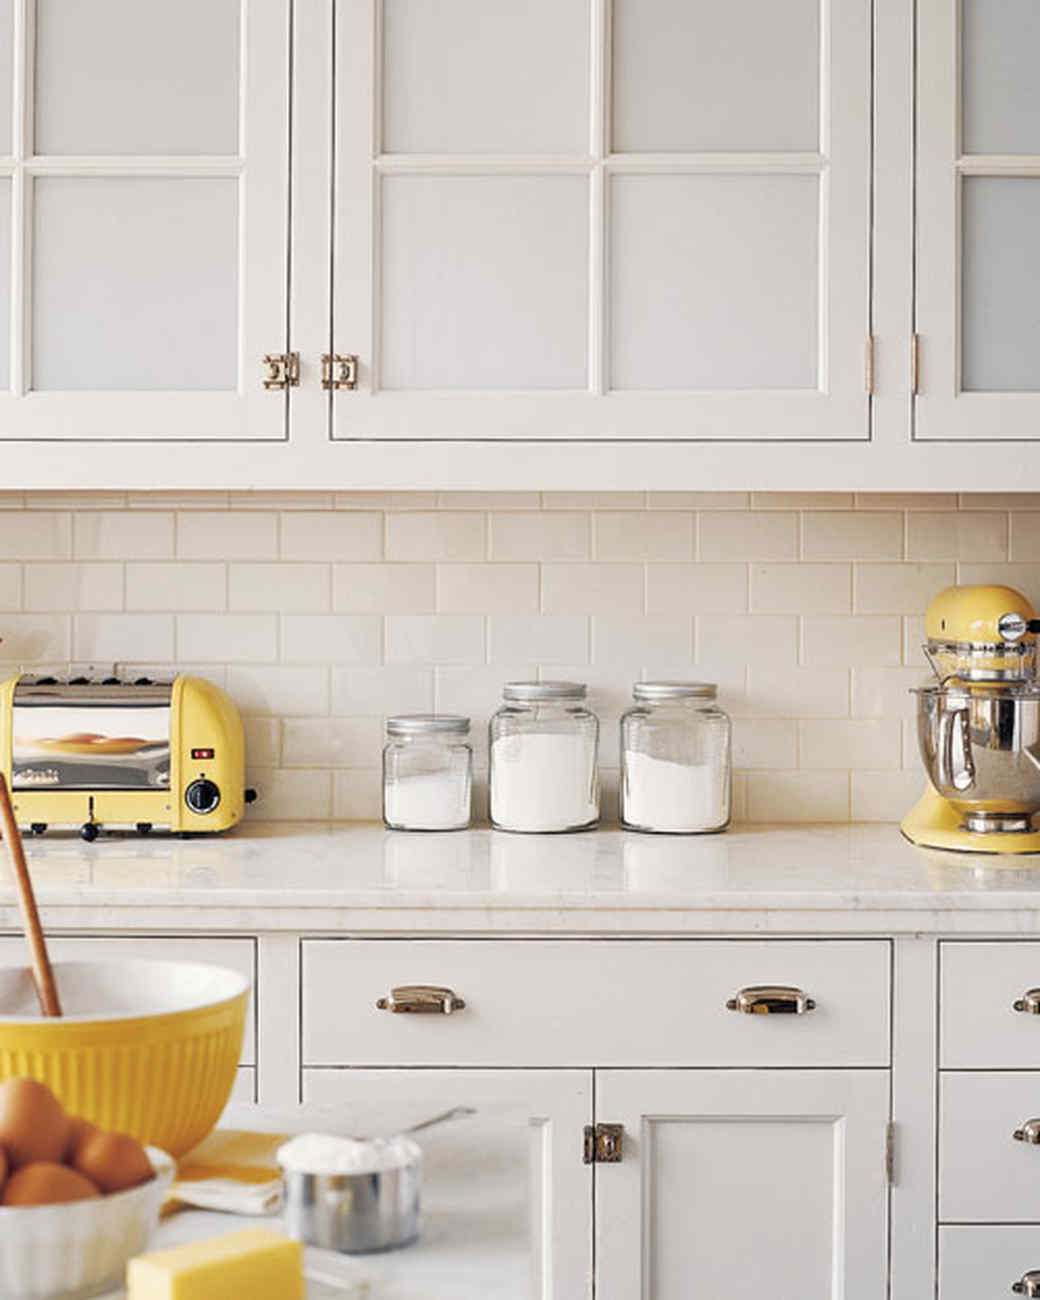 & Organize Your Kitchen Cabinets in 11 Easy Steps | Martha Stewart